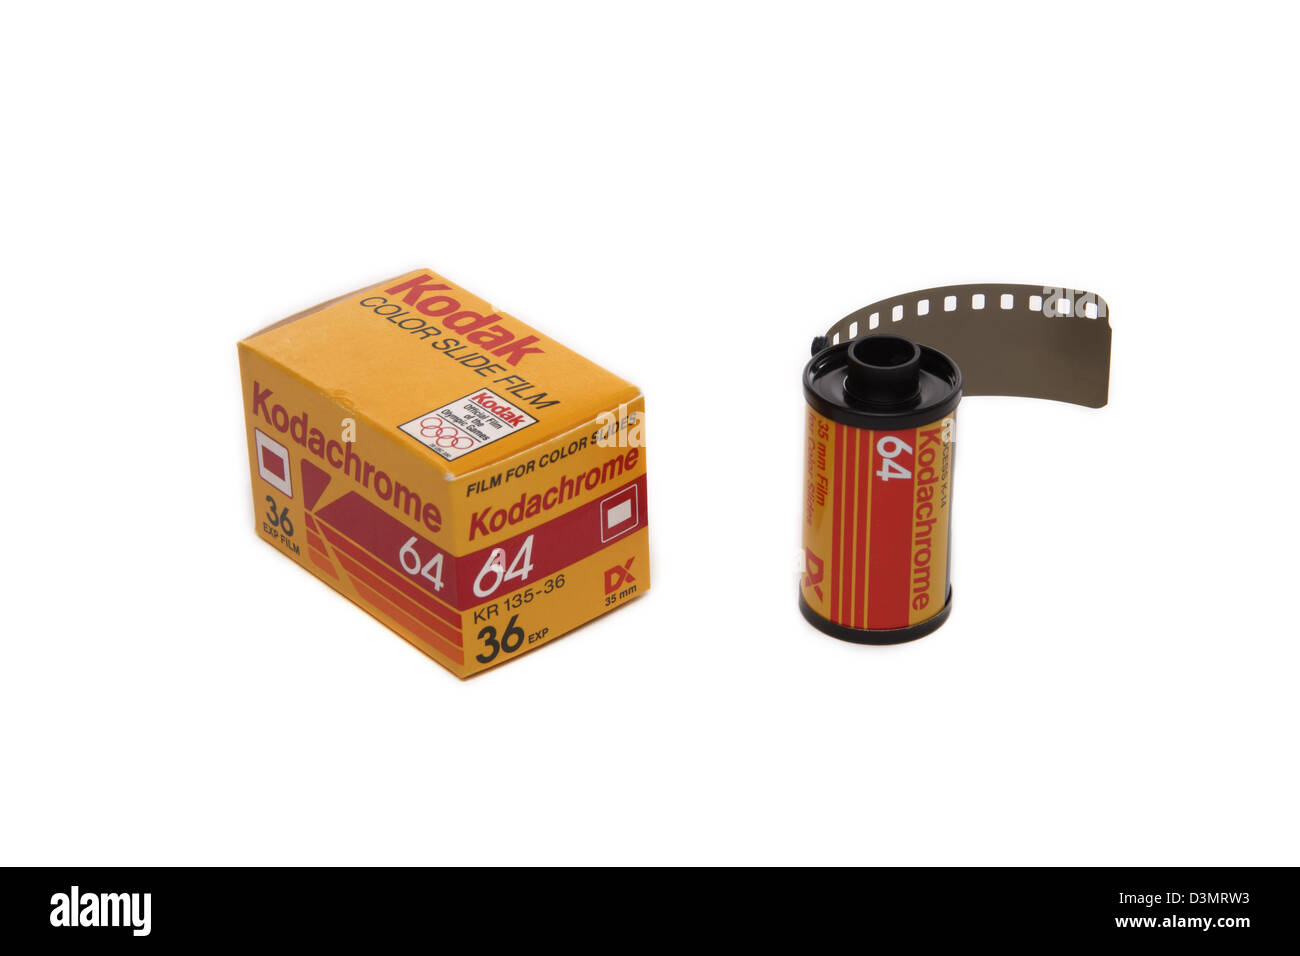 Kodak Kodachrome 64 35 mm slide film - Stock Image